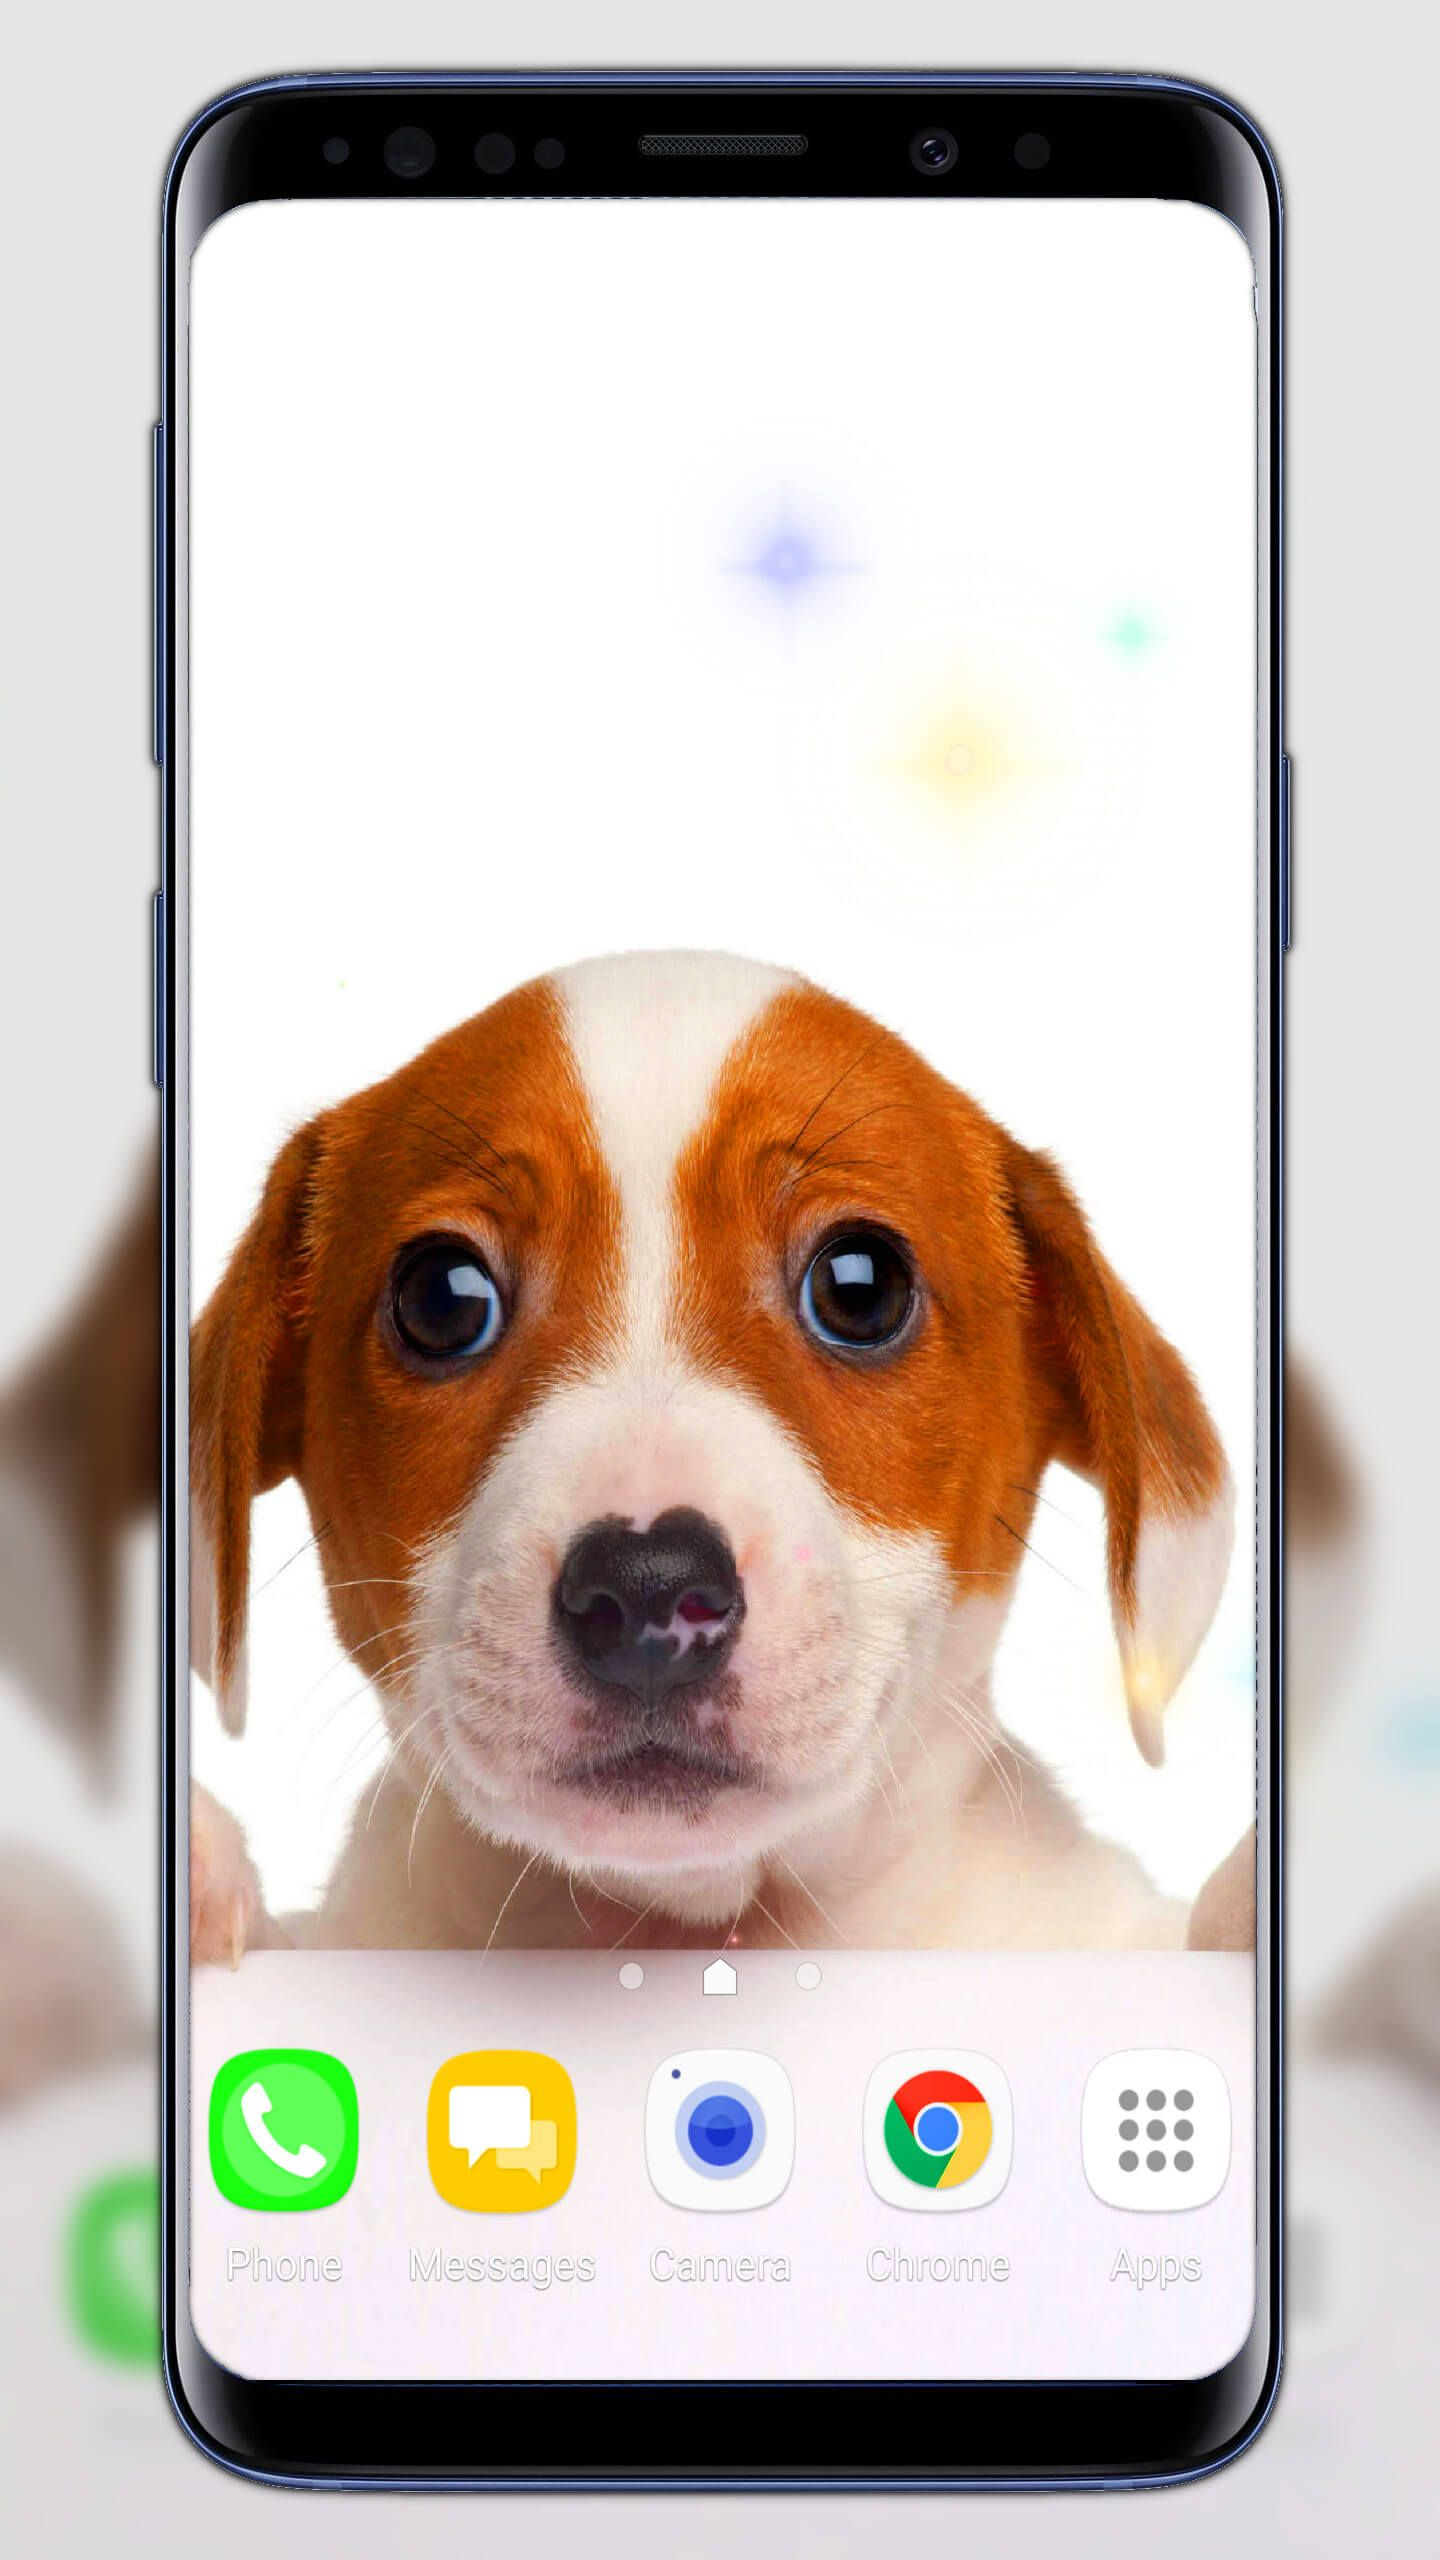 Puppies Live Wallpaper Puppies Cute Wallpaper Live Wallpapers Chrome Apps Android Theme